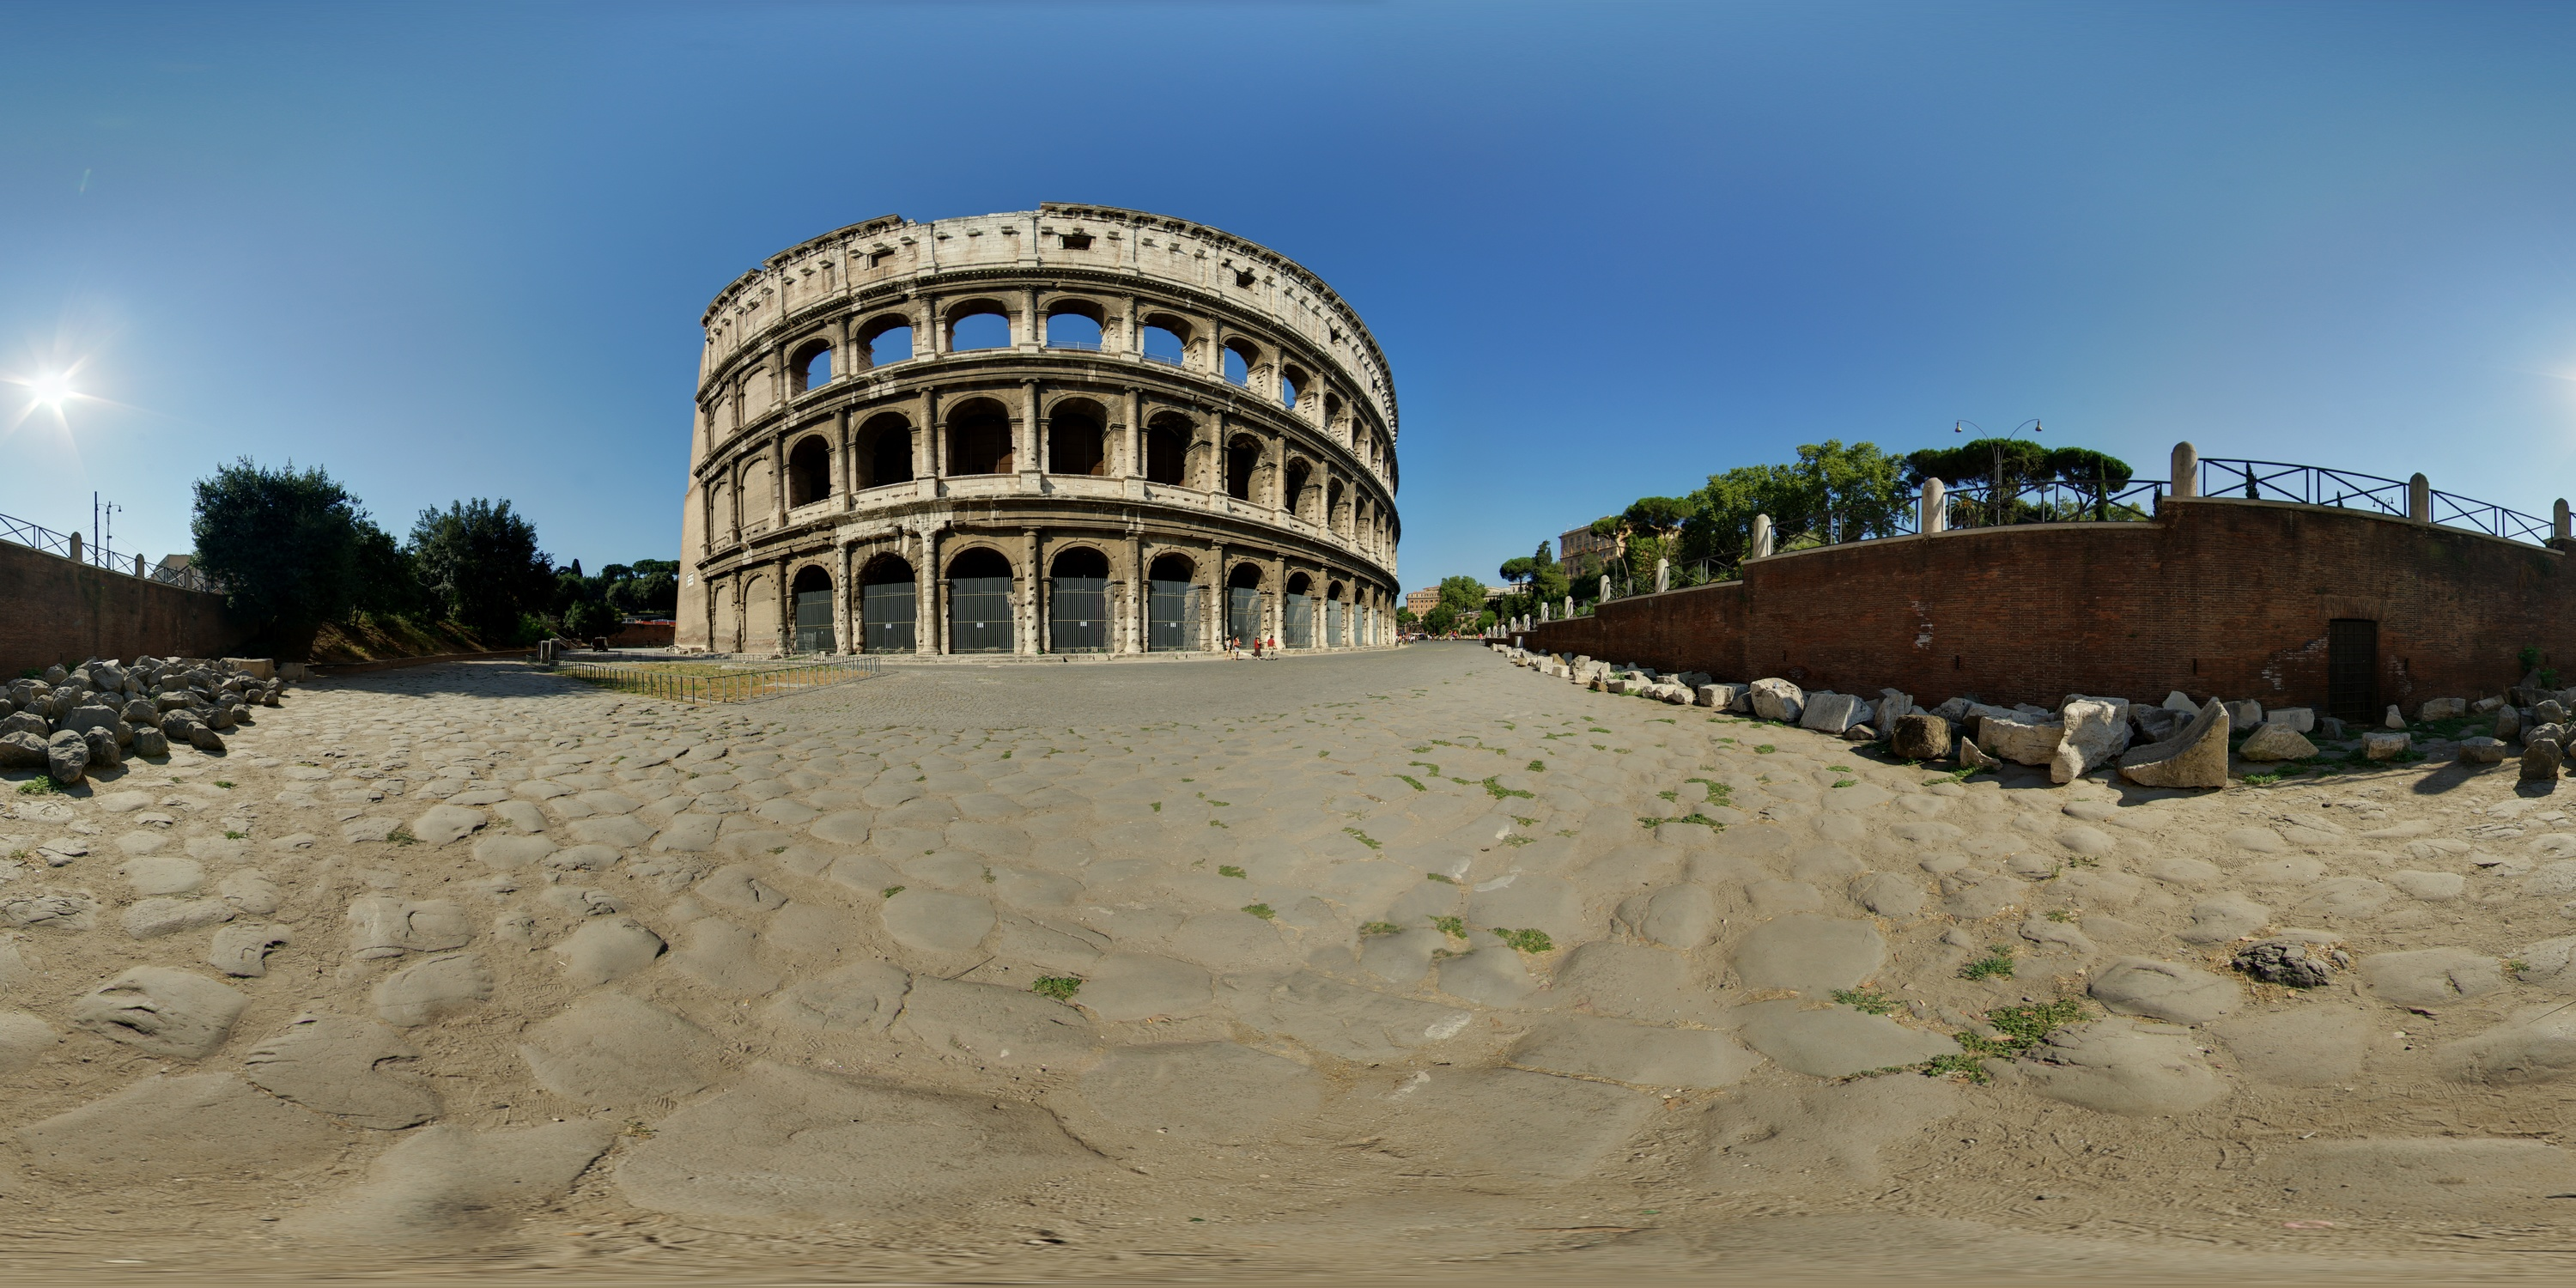 input_images/Colosseo.jpg